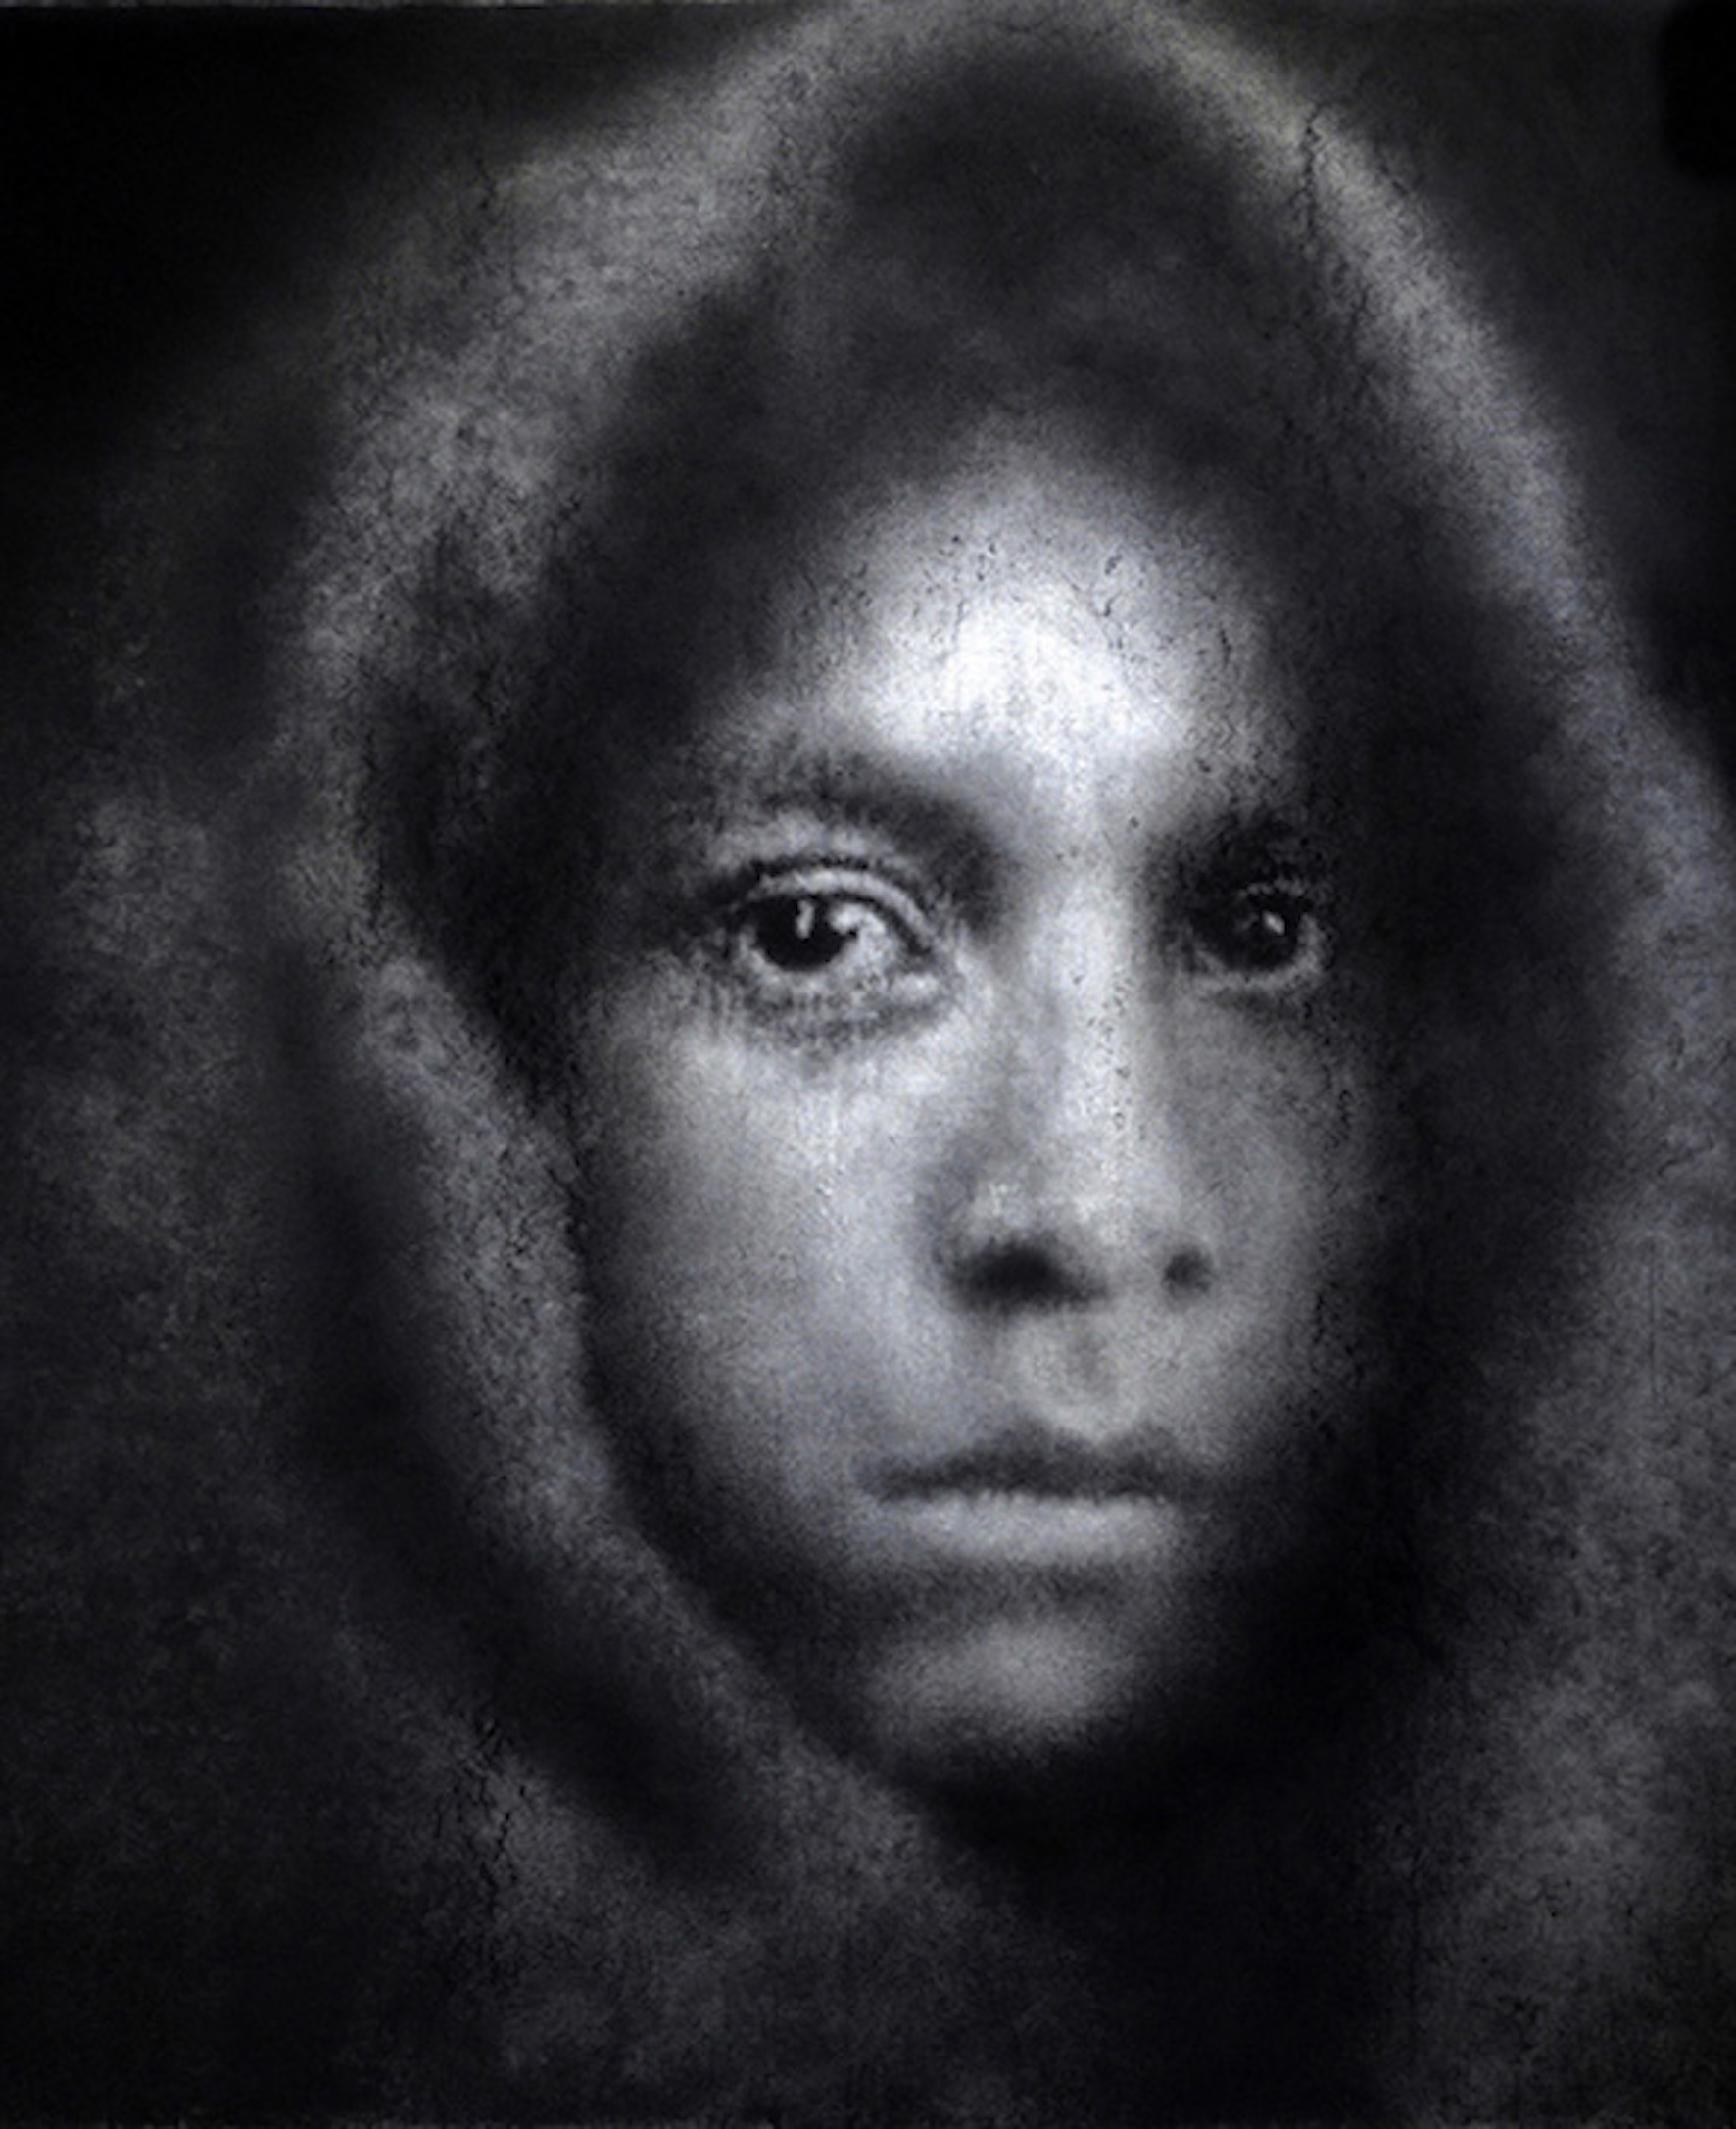 'Native American Girl, 19th Century' Caroline Burraway Charcoal, 150cm x 125cm